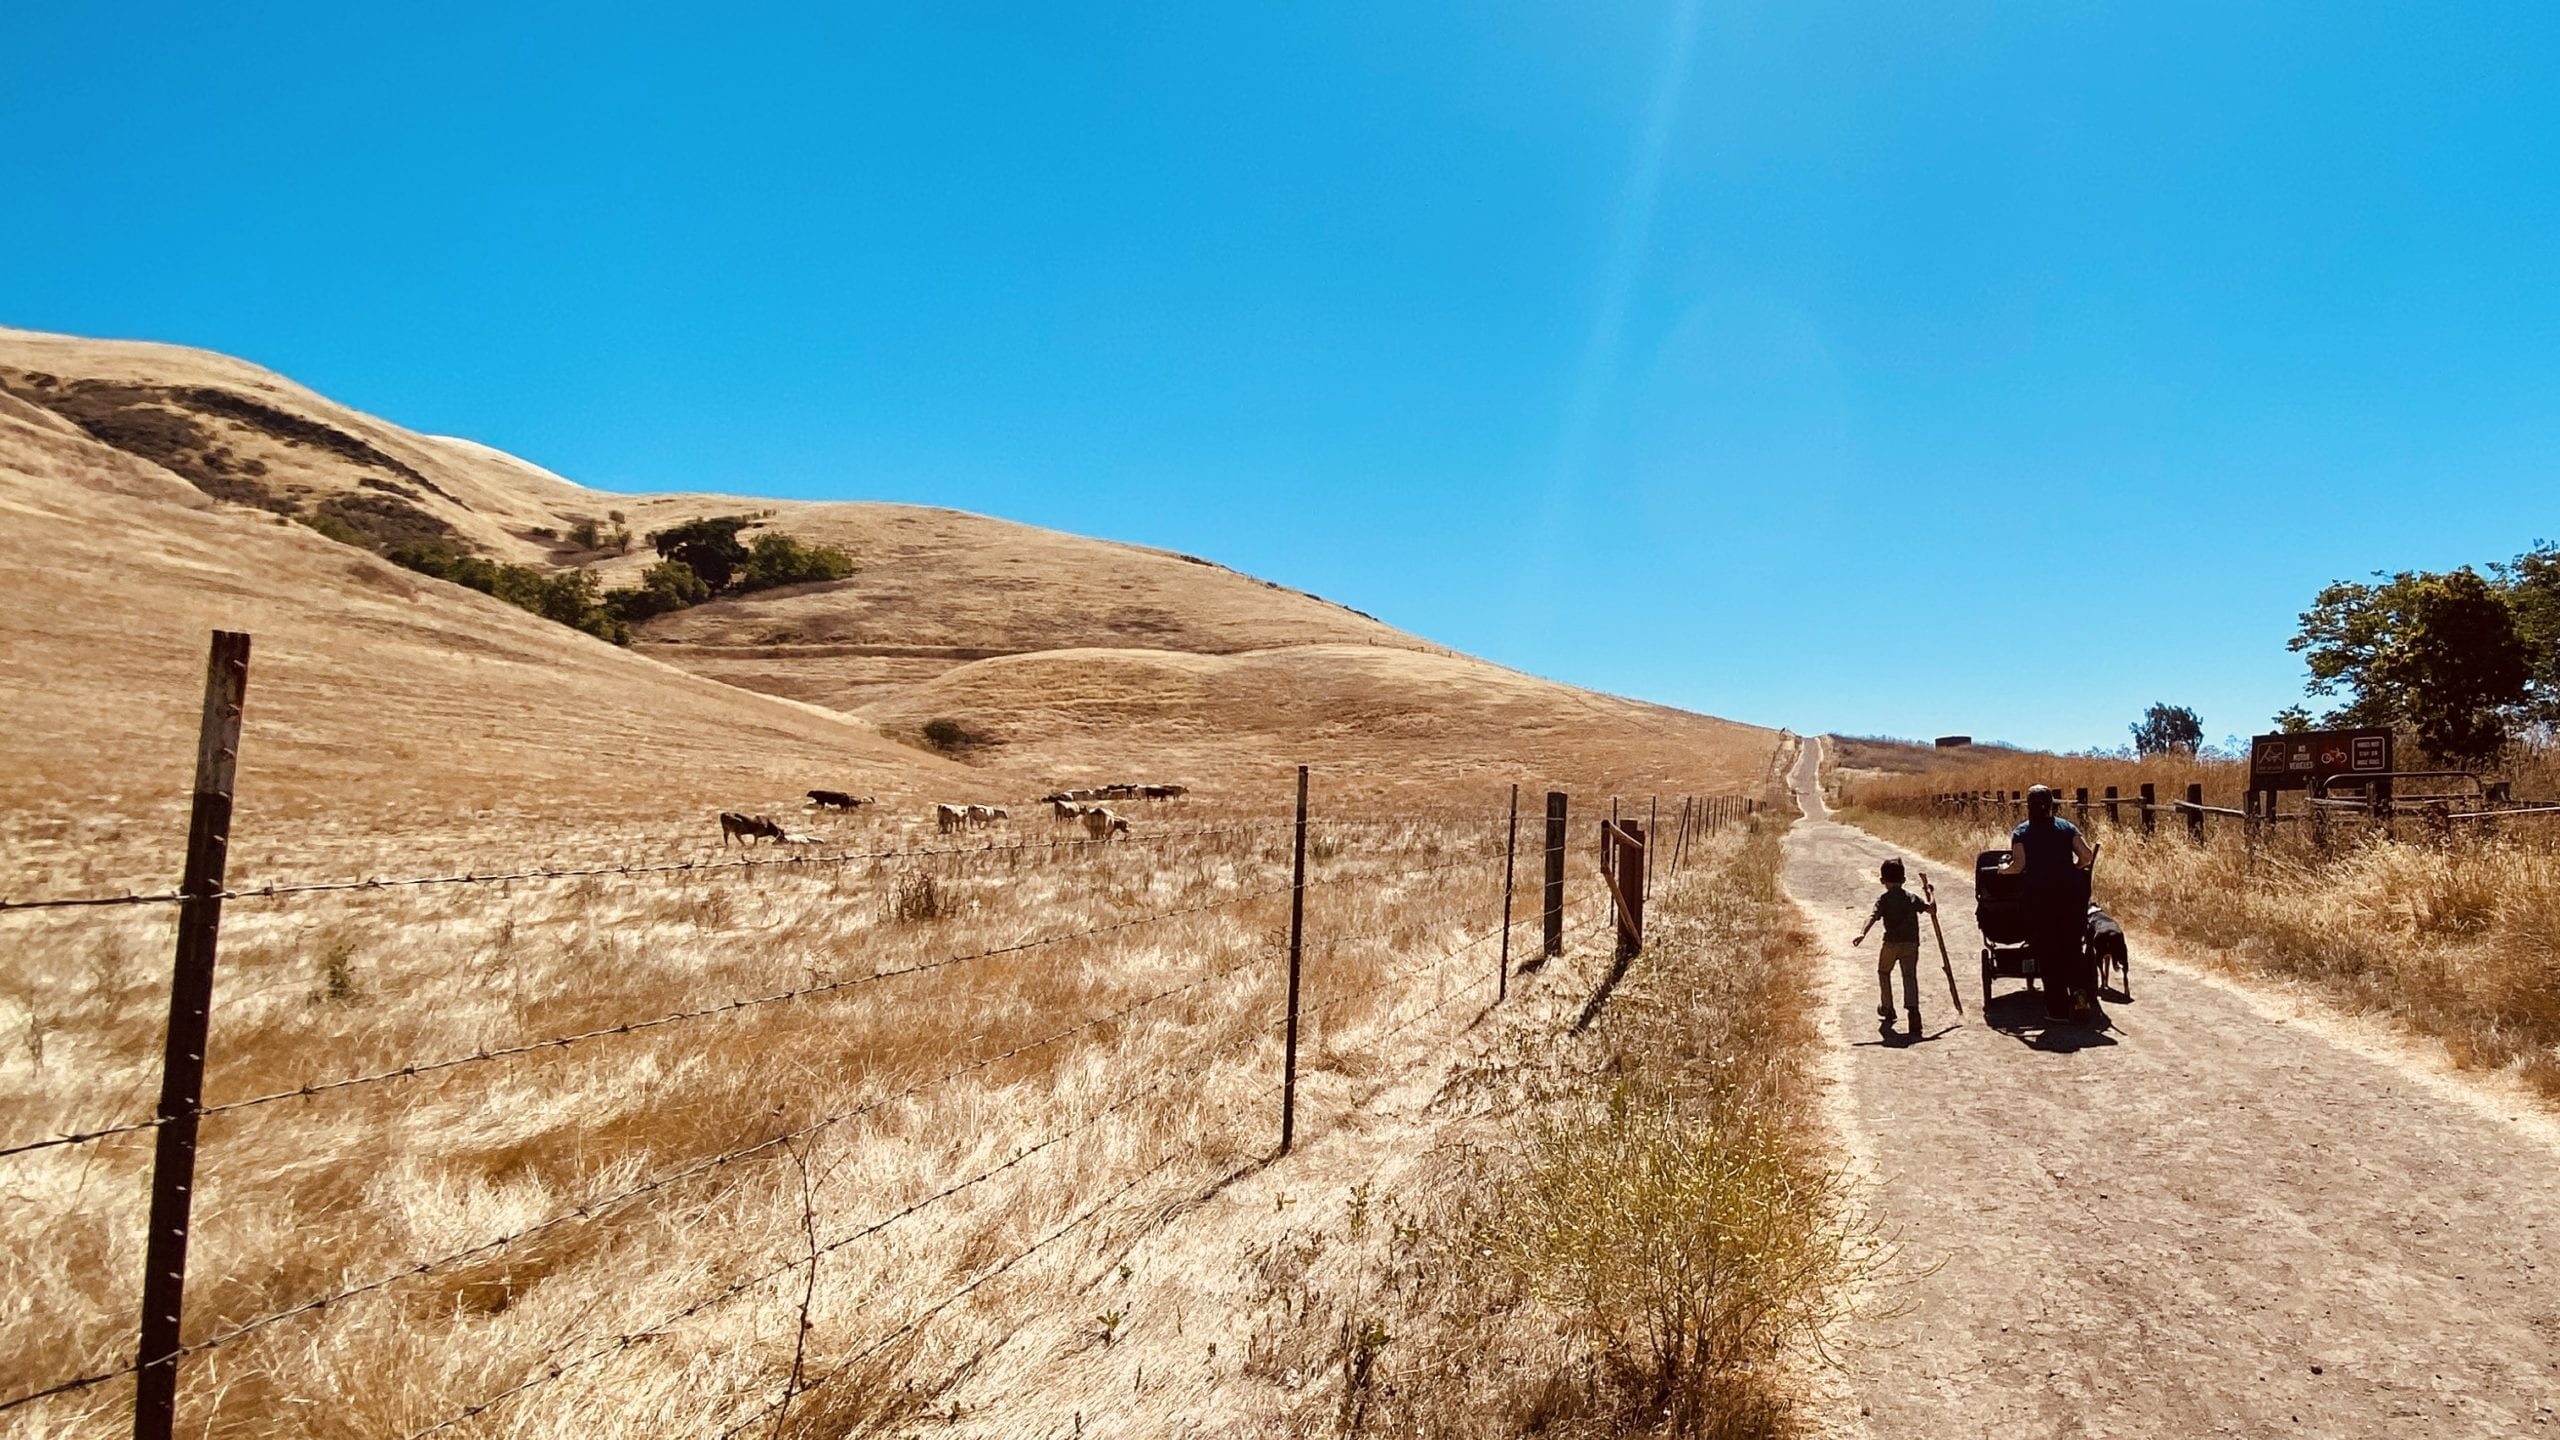 Cows greet us as we start the Tularcitos Trail: South Bay Hikes with Kids